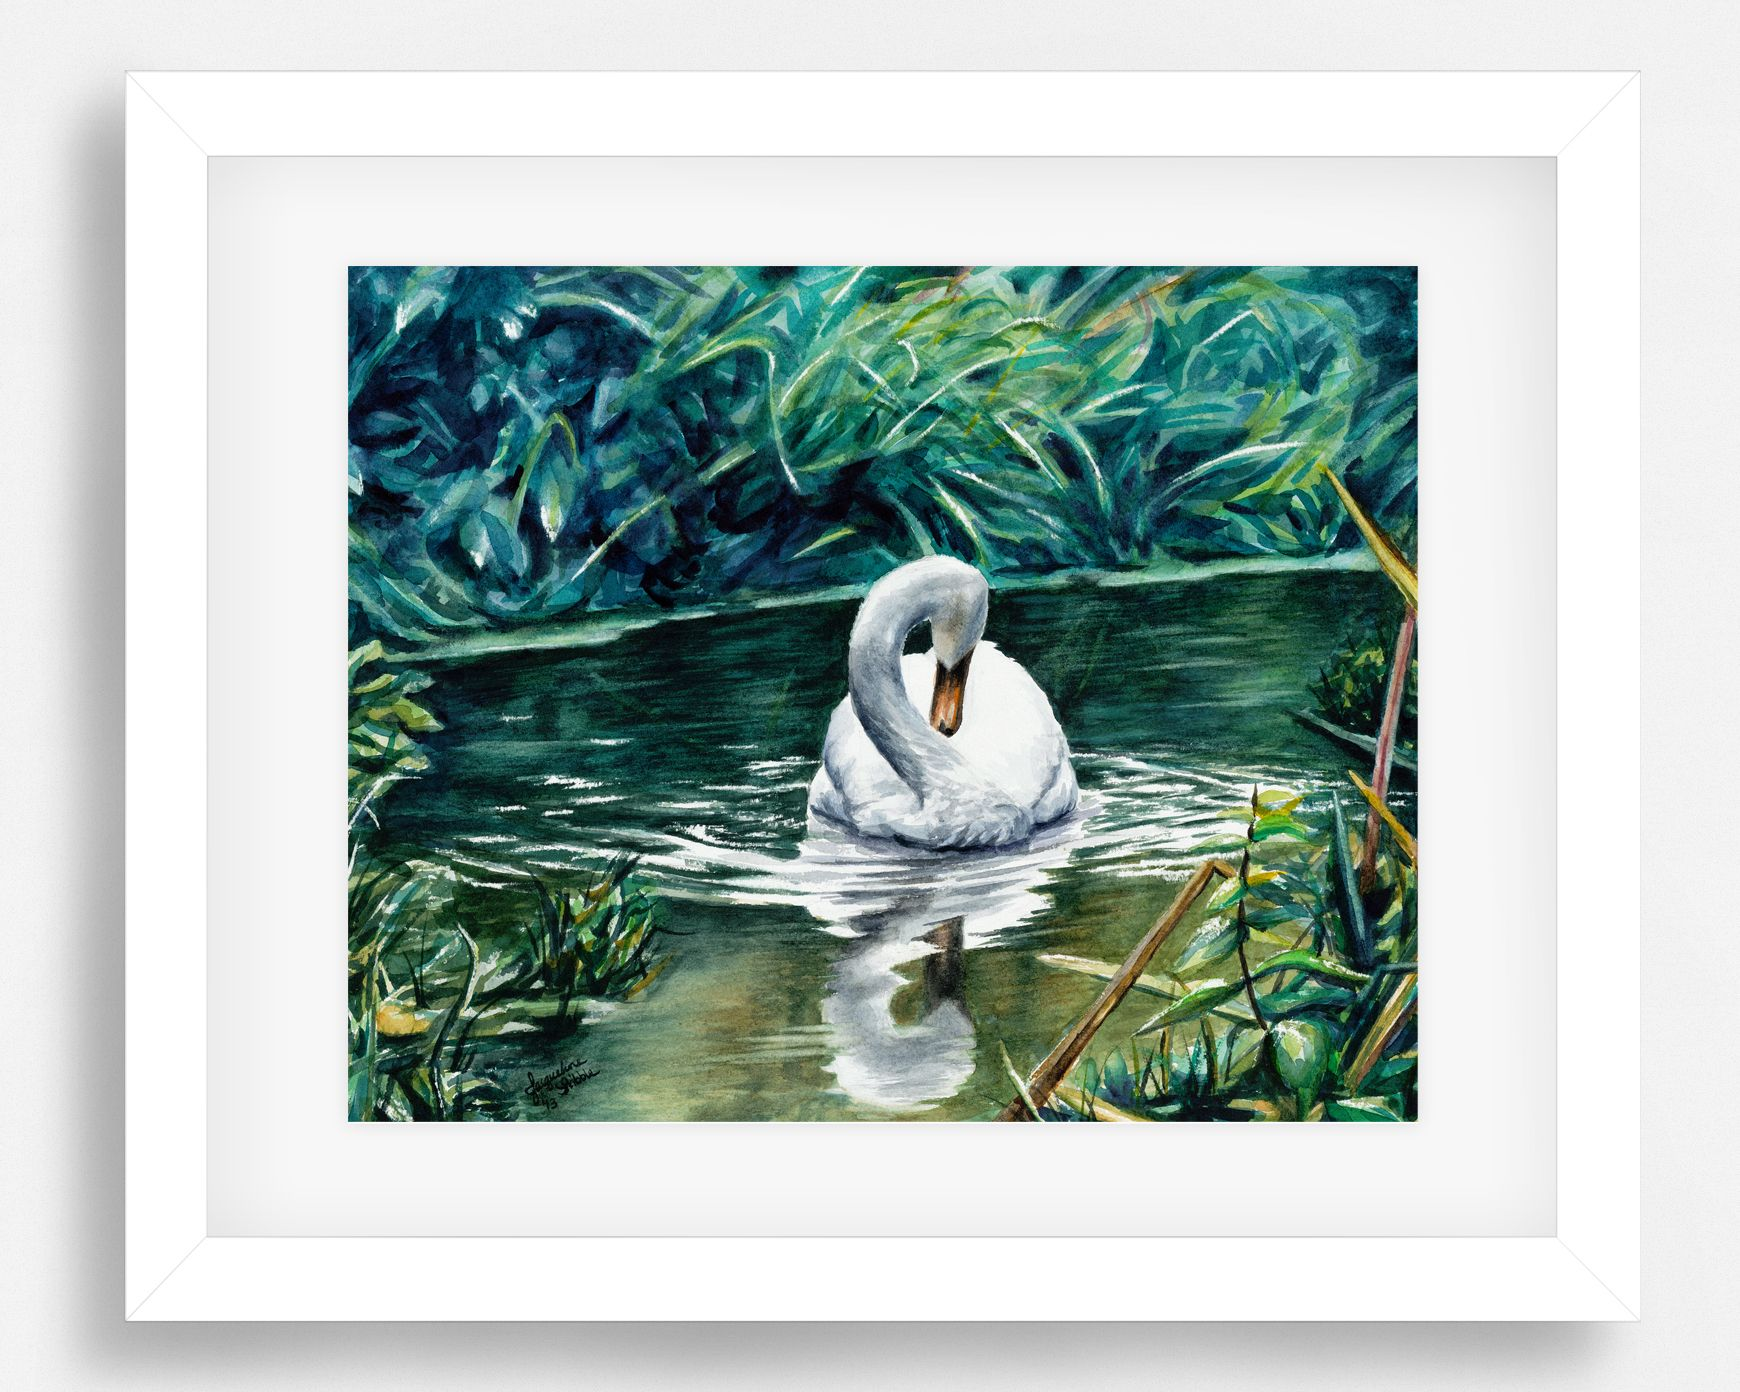 Shy Swan wildlife watercolor painting by Jacqueline Tribble. Available as a fine art print on Etsy. Save 10% with coupon code PIN10